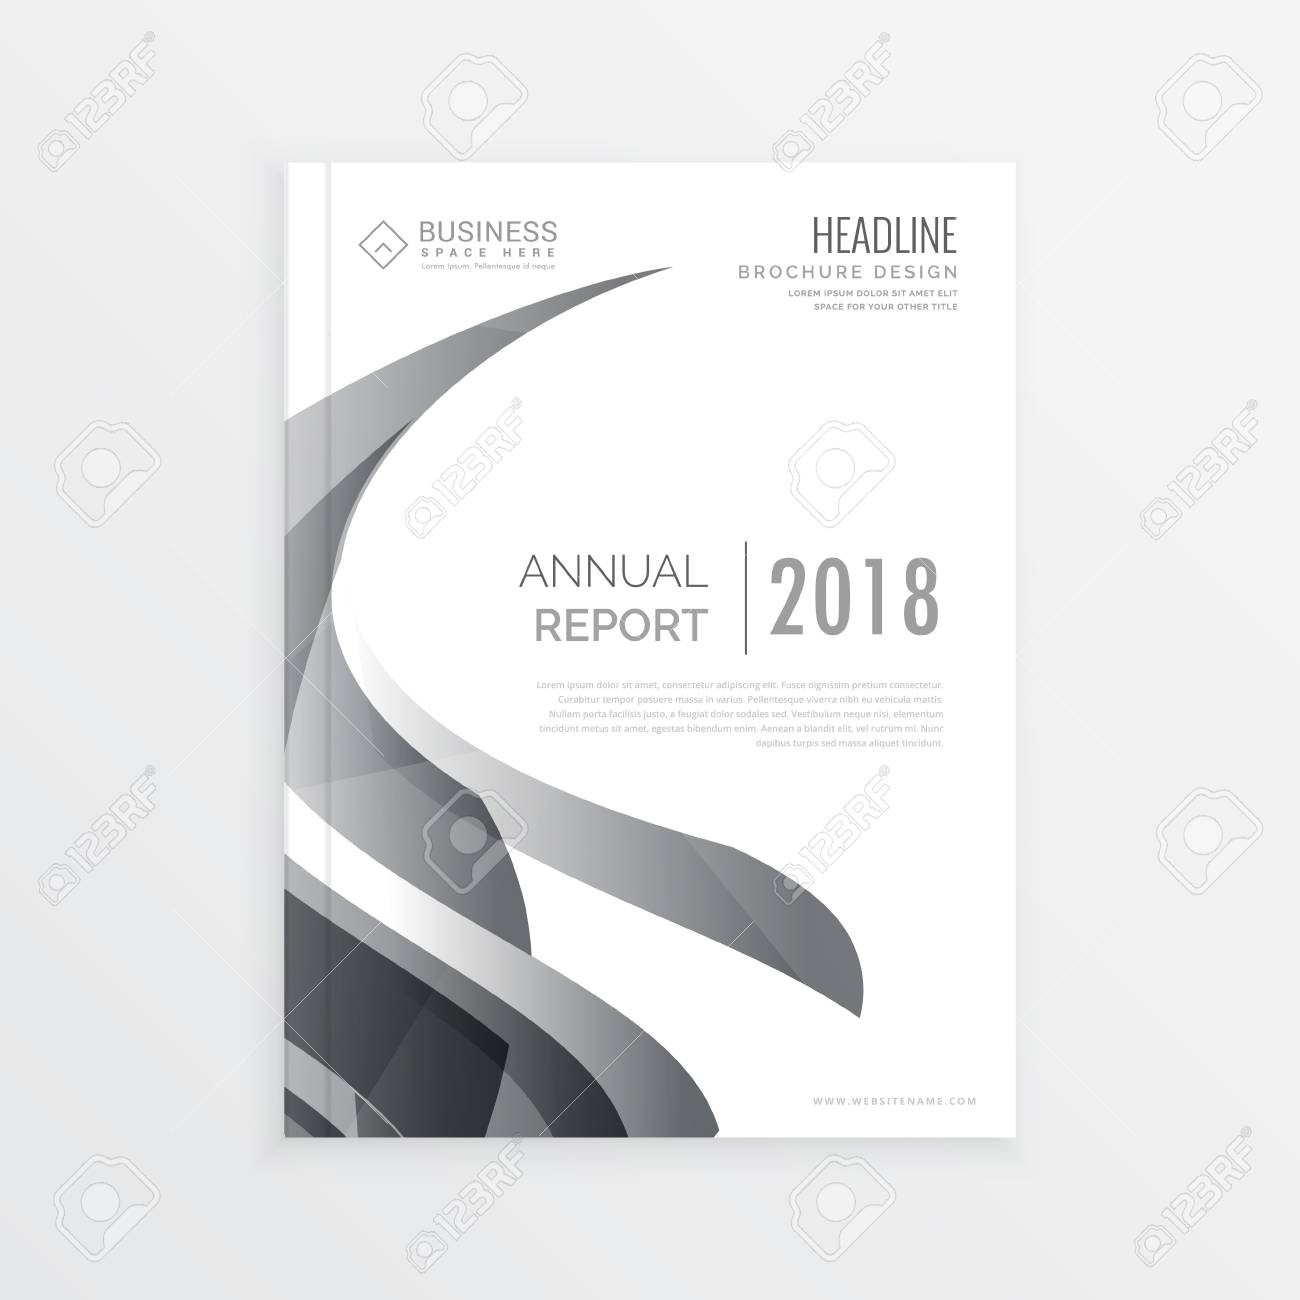 Stylish business magazine cover page template for annual report stylish business magazine cover page template for annual report stock vector 66230318 flashek Gallery